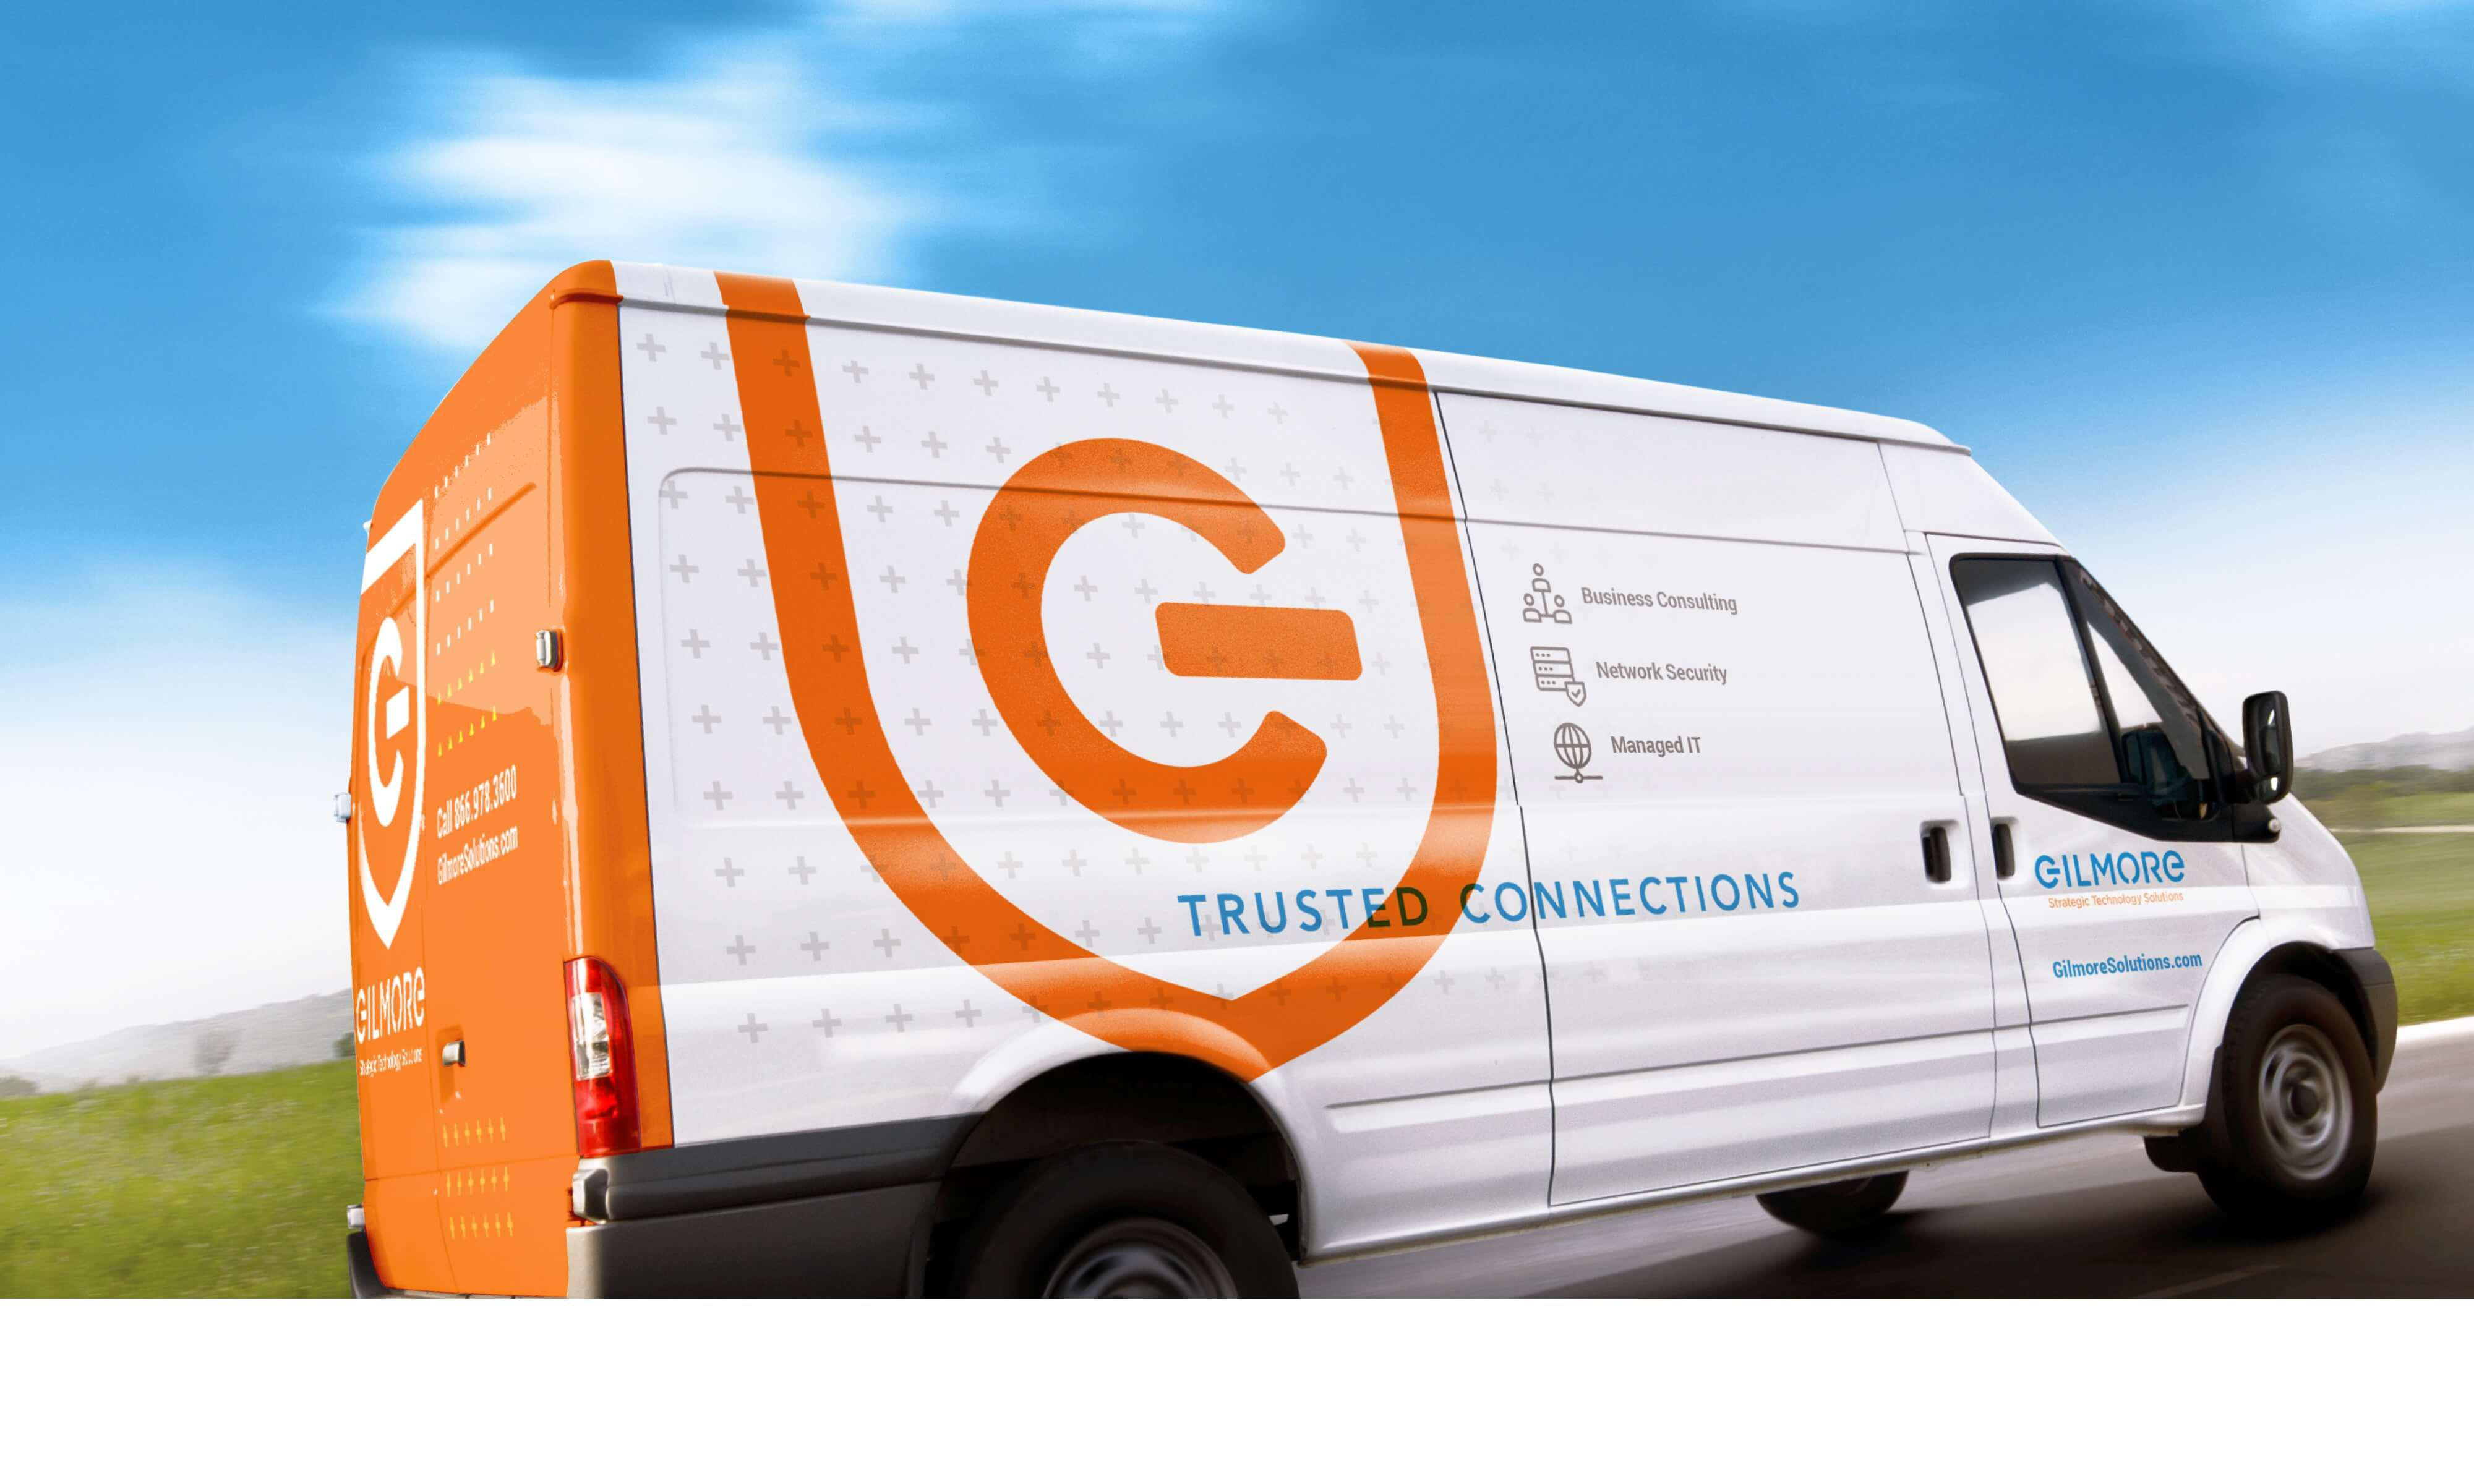 Gilmore Branded Vehicle Livery